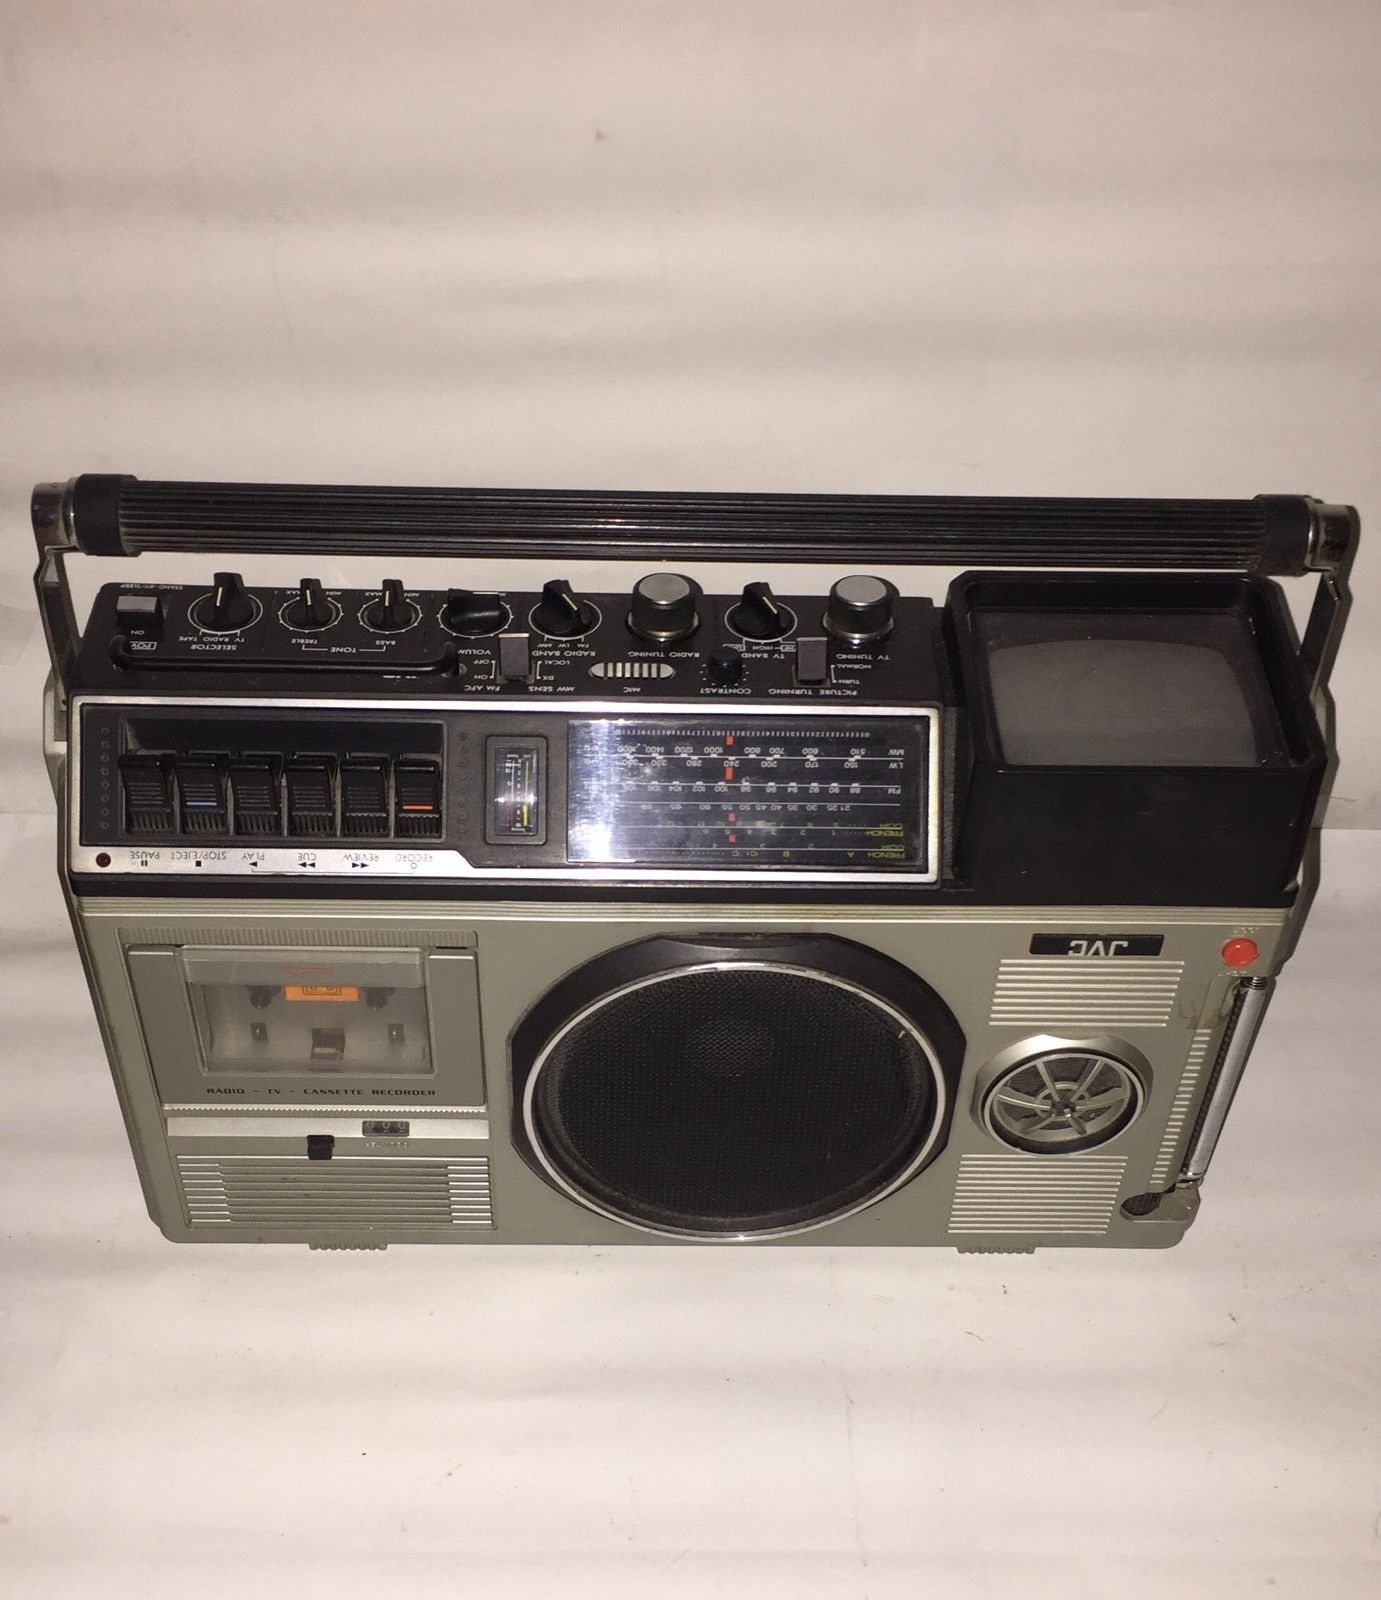 poste radio t l vision tv jvc 3080 ghetto blaster boombox vintage ebay jvc pinterest. Black Bedroom Furniture Sets. Home Design Ideas